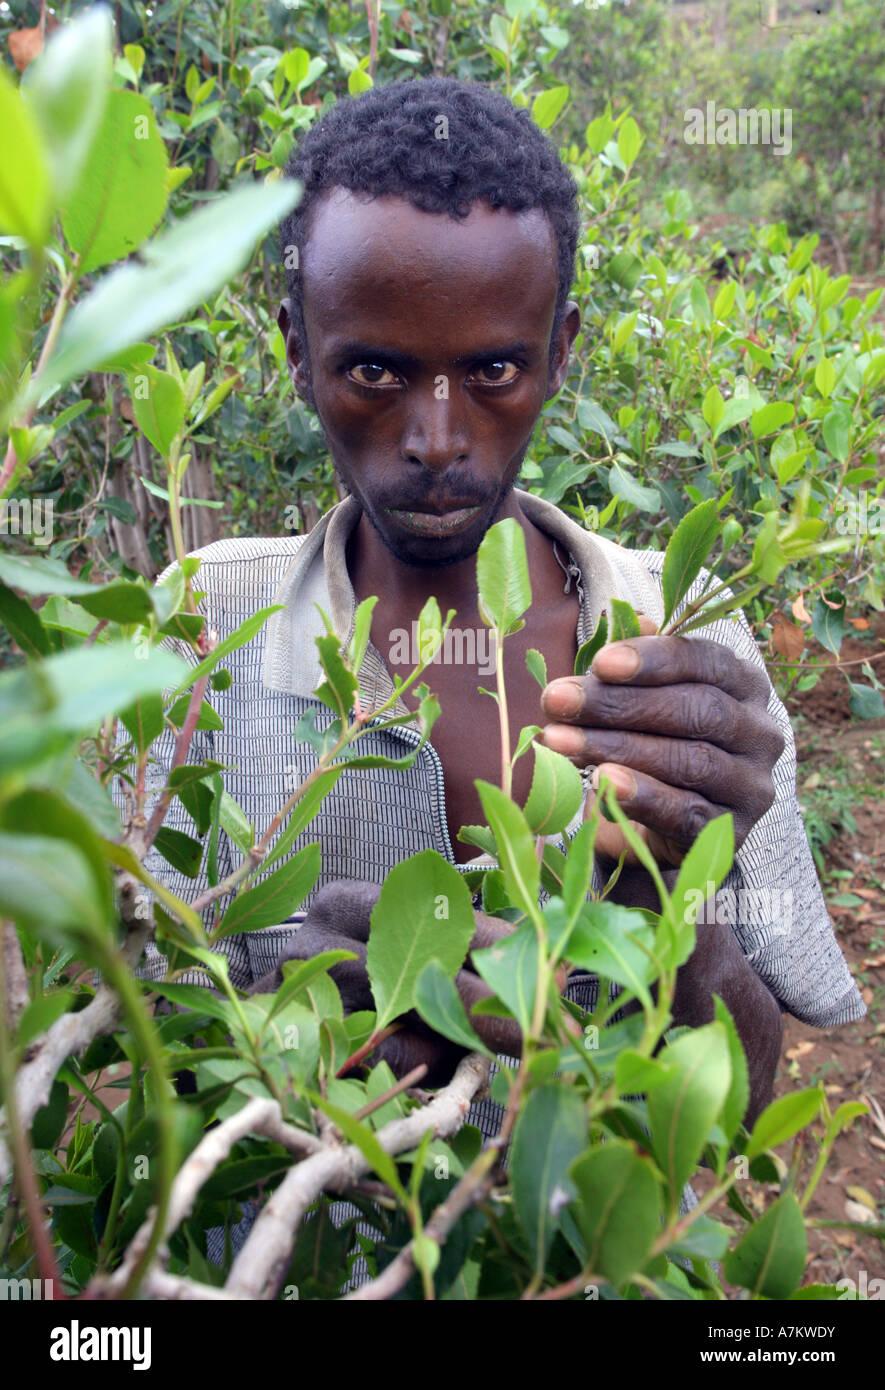 Ethiopia - Farmer harvests leaves of the plants drug Chat at his farm near Harar - Stock Image